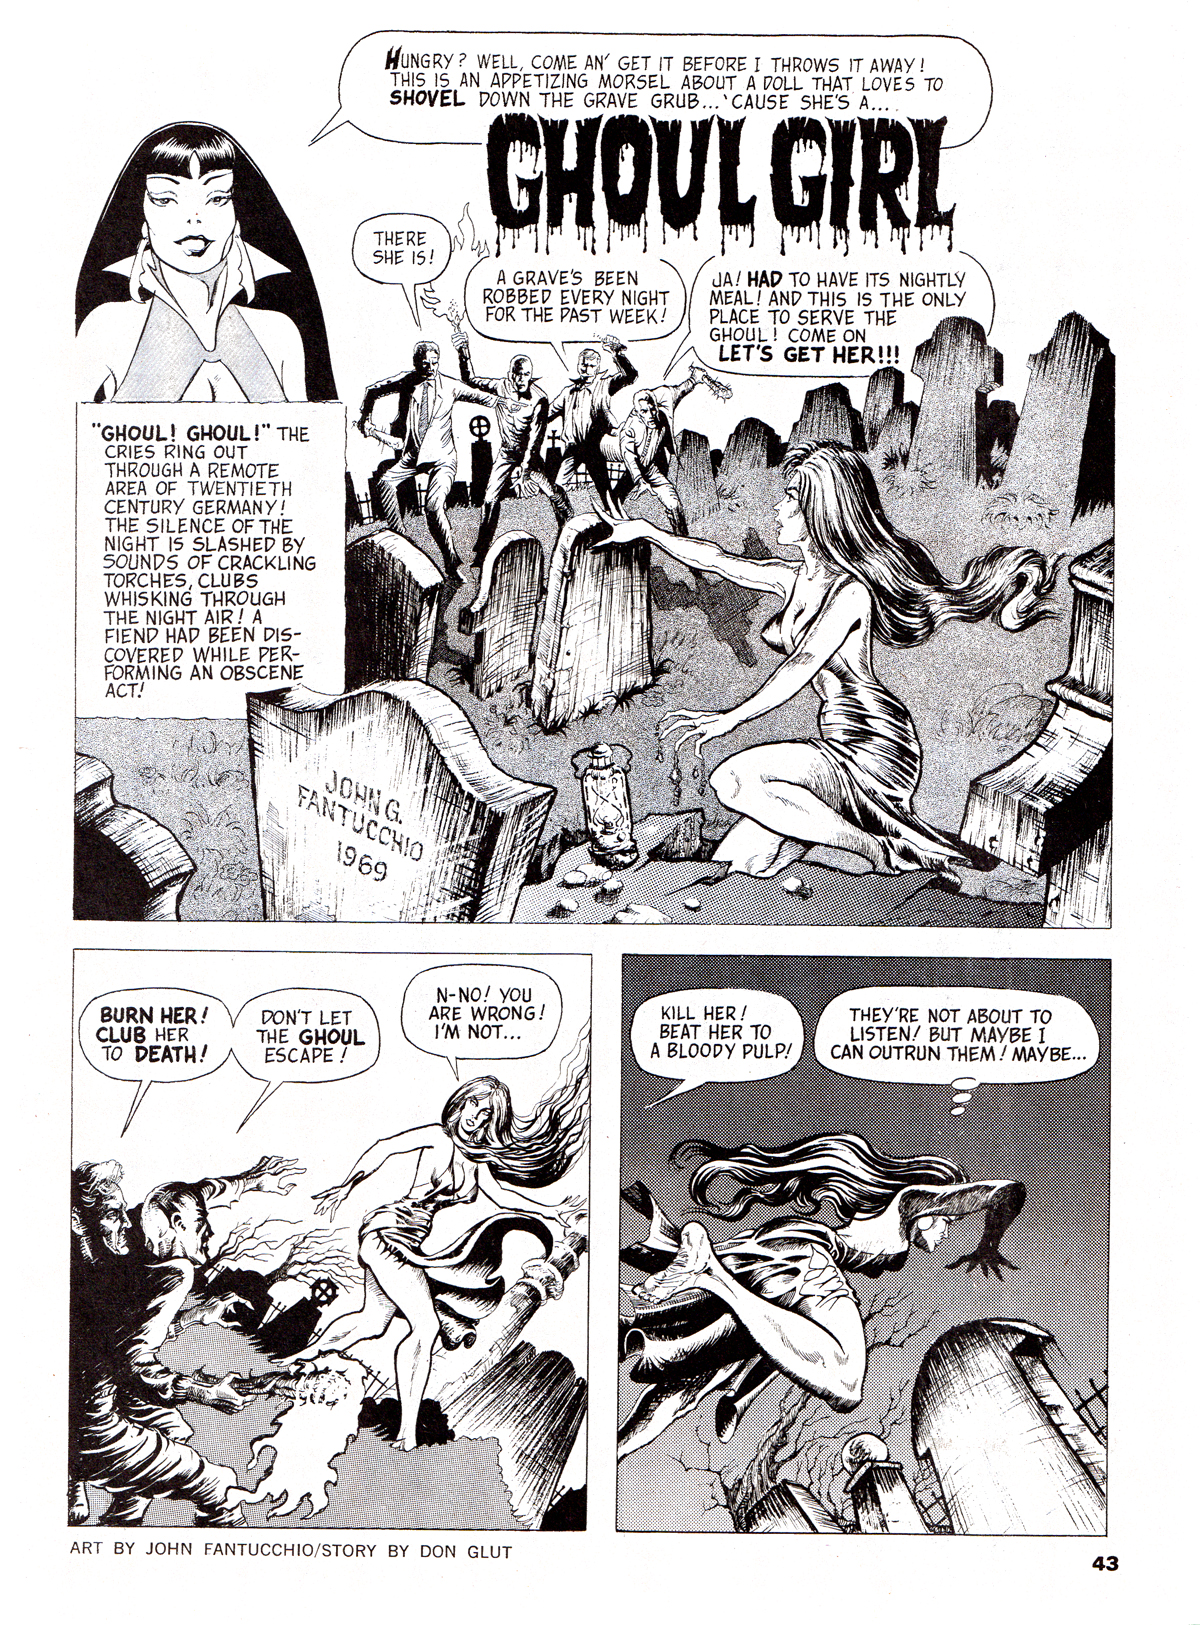 Vampirella 5 with 6 page ''Ghoul Girl'' story with art by John G. Fantucchio